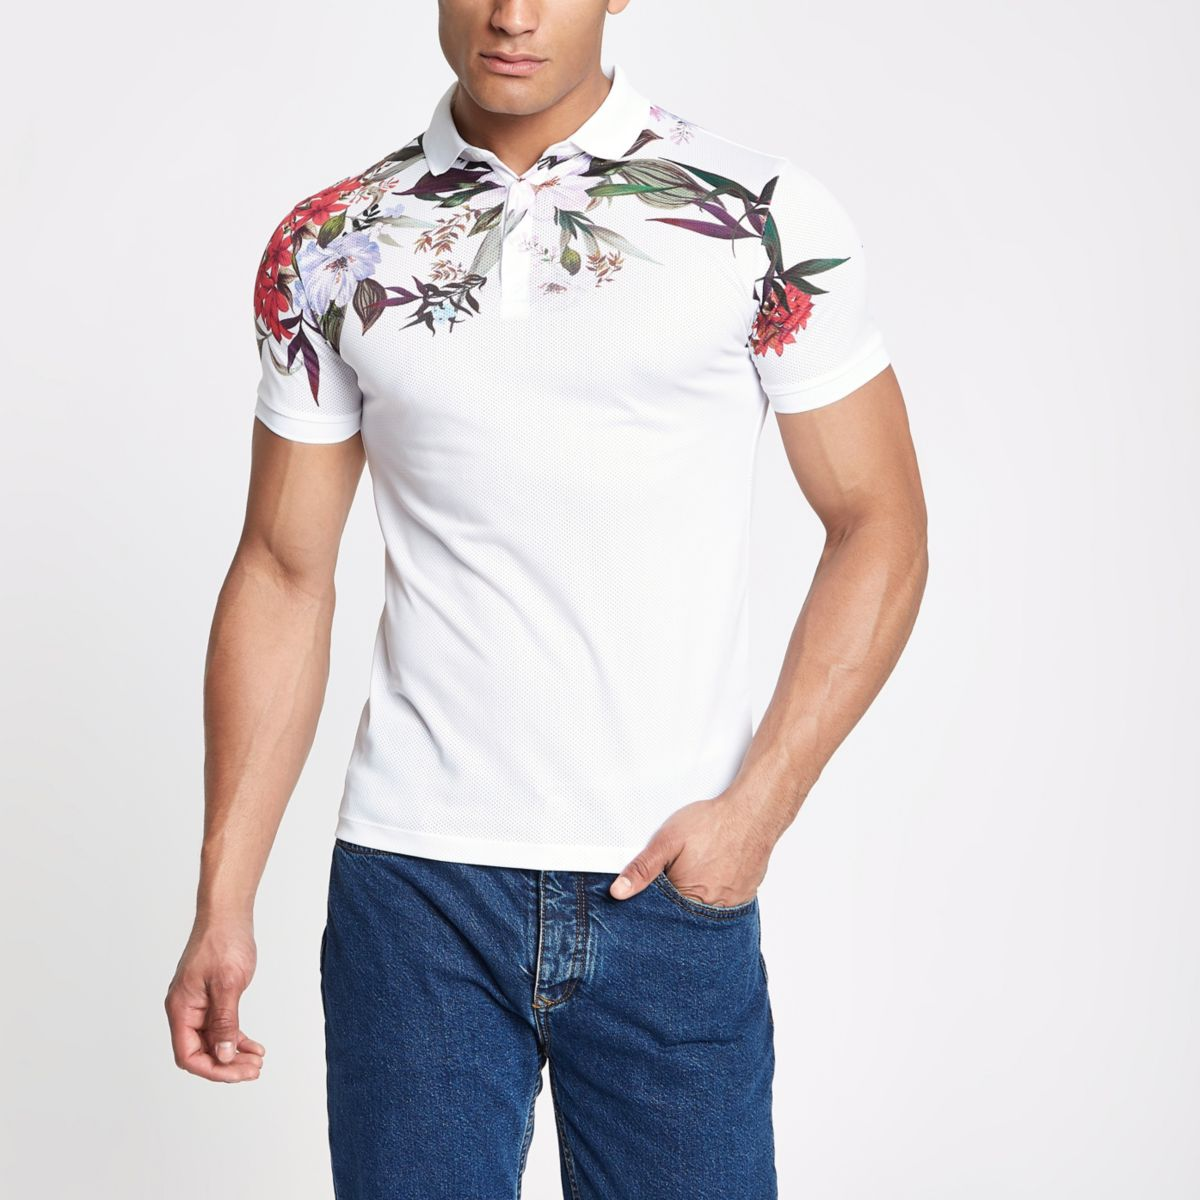 polo fit White mesh shirt floral muscle gfAqwF